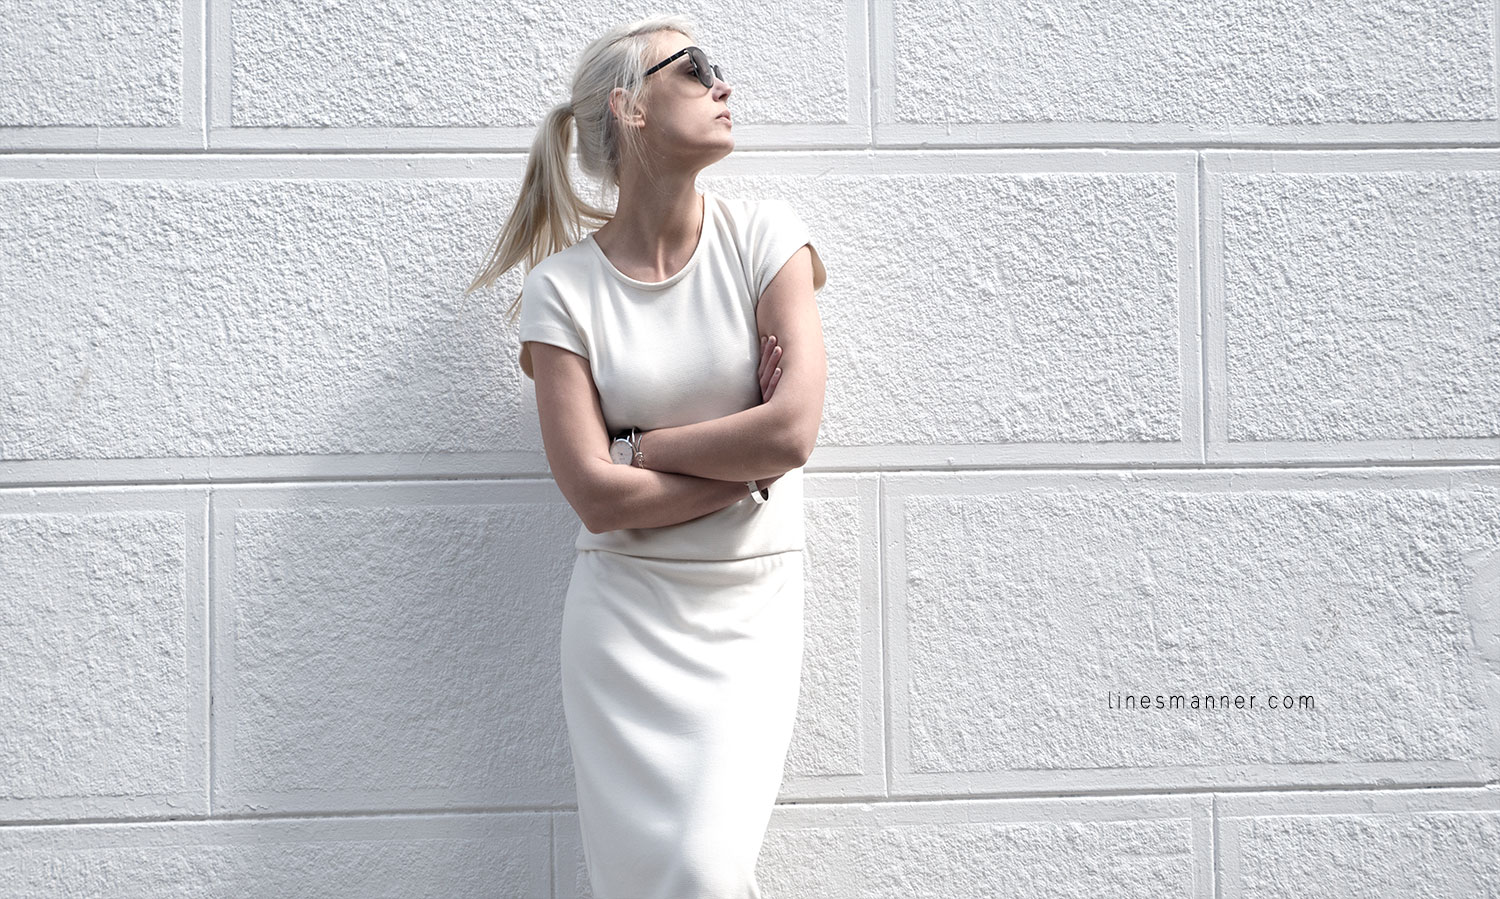 Lines-Manner-Whiteout-Fashion-Outfit-White-Bright-Simplicity-Elegance-Effortless-Anecdote-Degree_Seven-Quality-Summer-Minimal-Essential-Modern-Sleek-Details-1